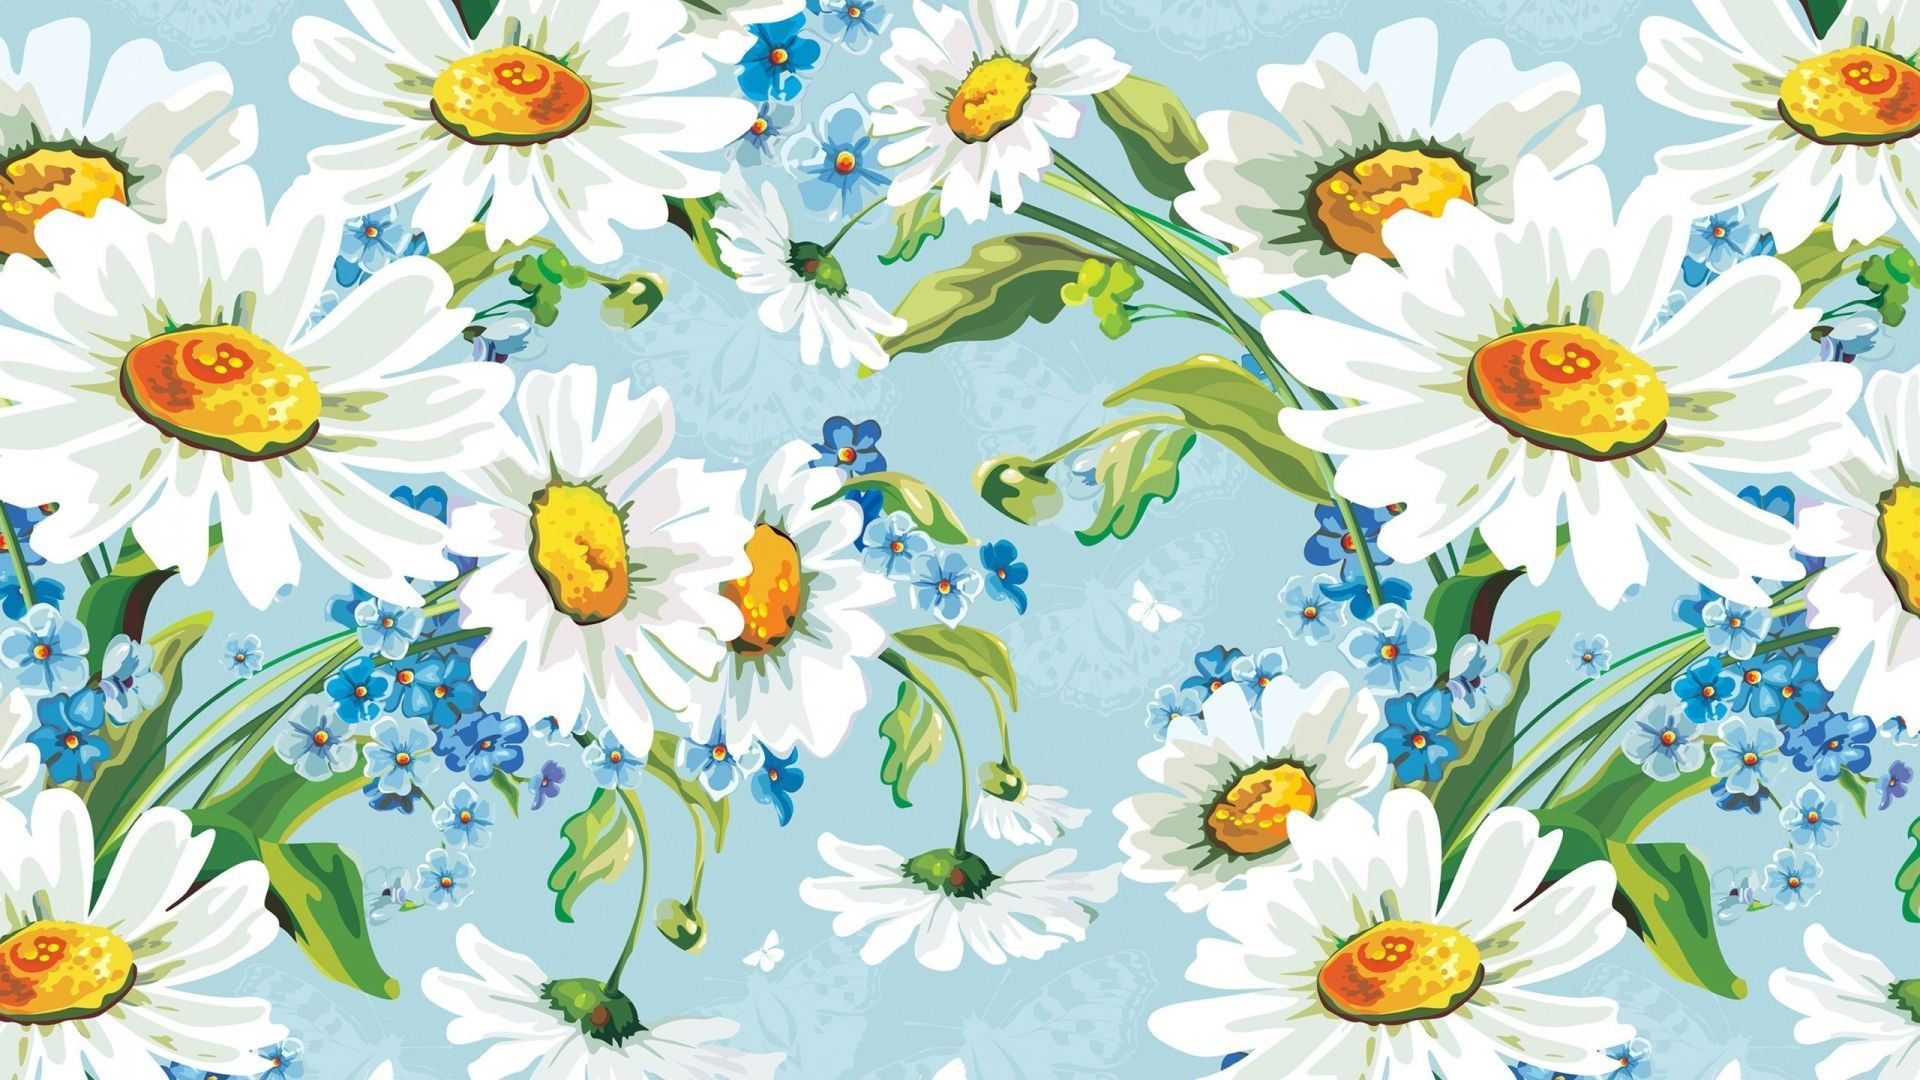 white daisies images hd